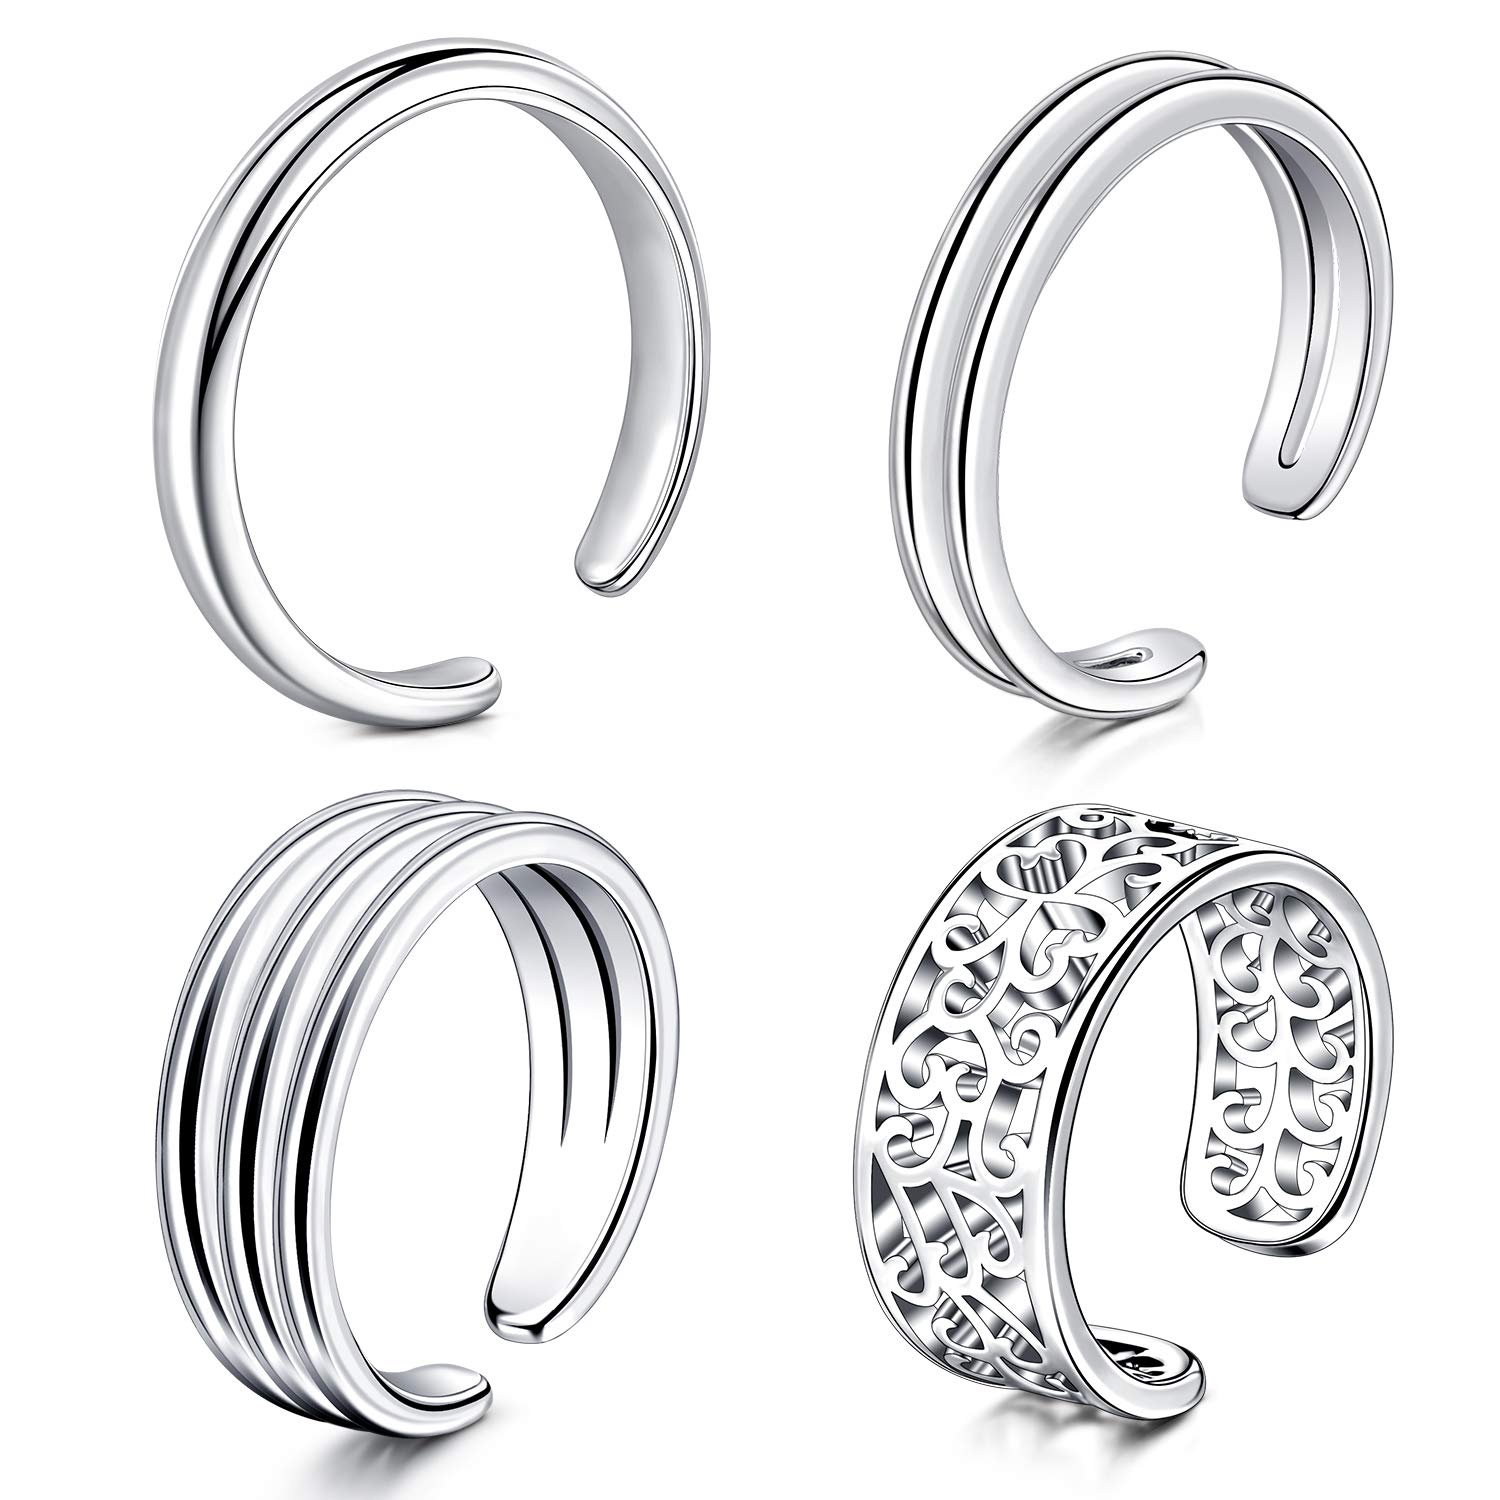 Anicina Adjustable Toe Rings Set Simple Open Thin Band Hollow Flower Cuff Ring Forefinger Rings Open Band Foot Rings Set Gifts for Women